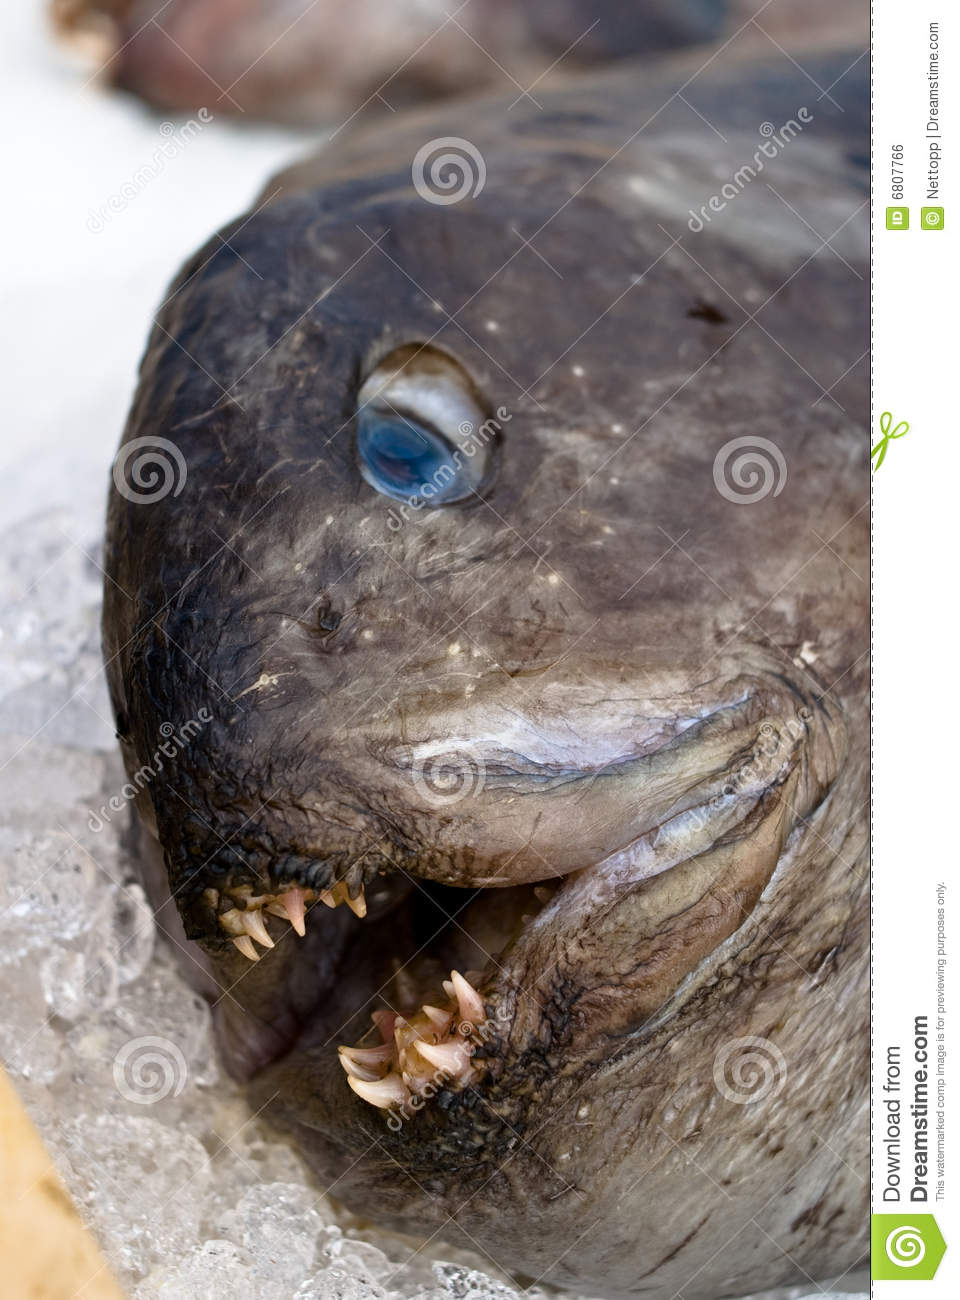 Ugly fish stock photo. Image of teeth, scary, water, iceland - 6807766